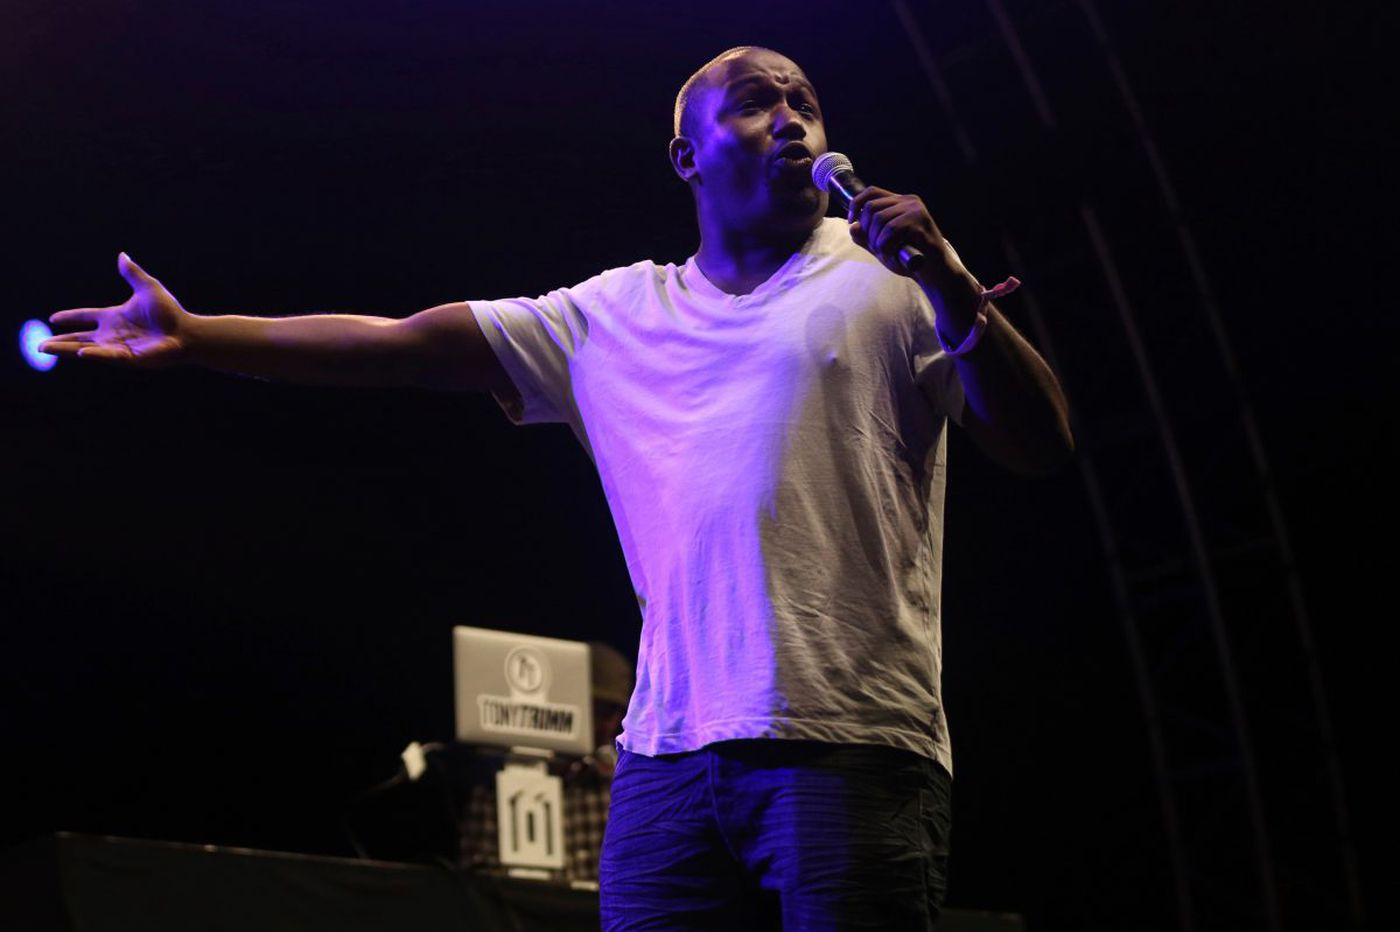 Hannibal Buress stays away from Cosby jokes at Merriam Theater stop